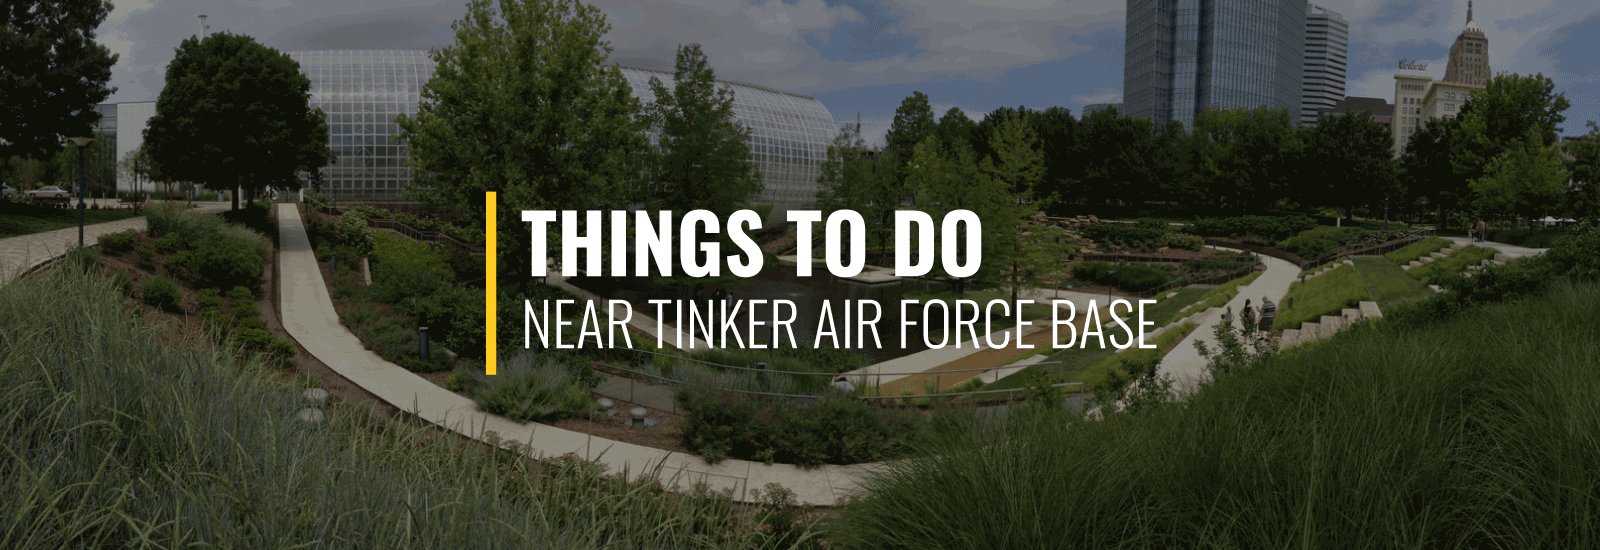 Things to Do Near Tinker AFB